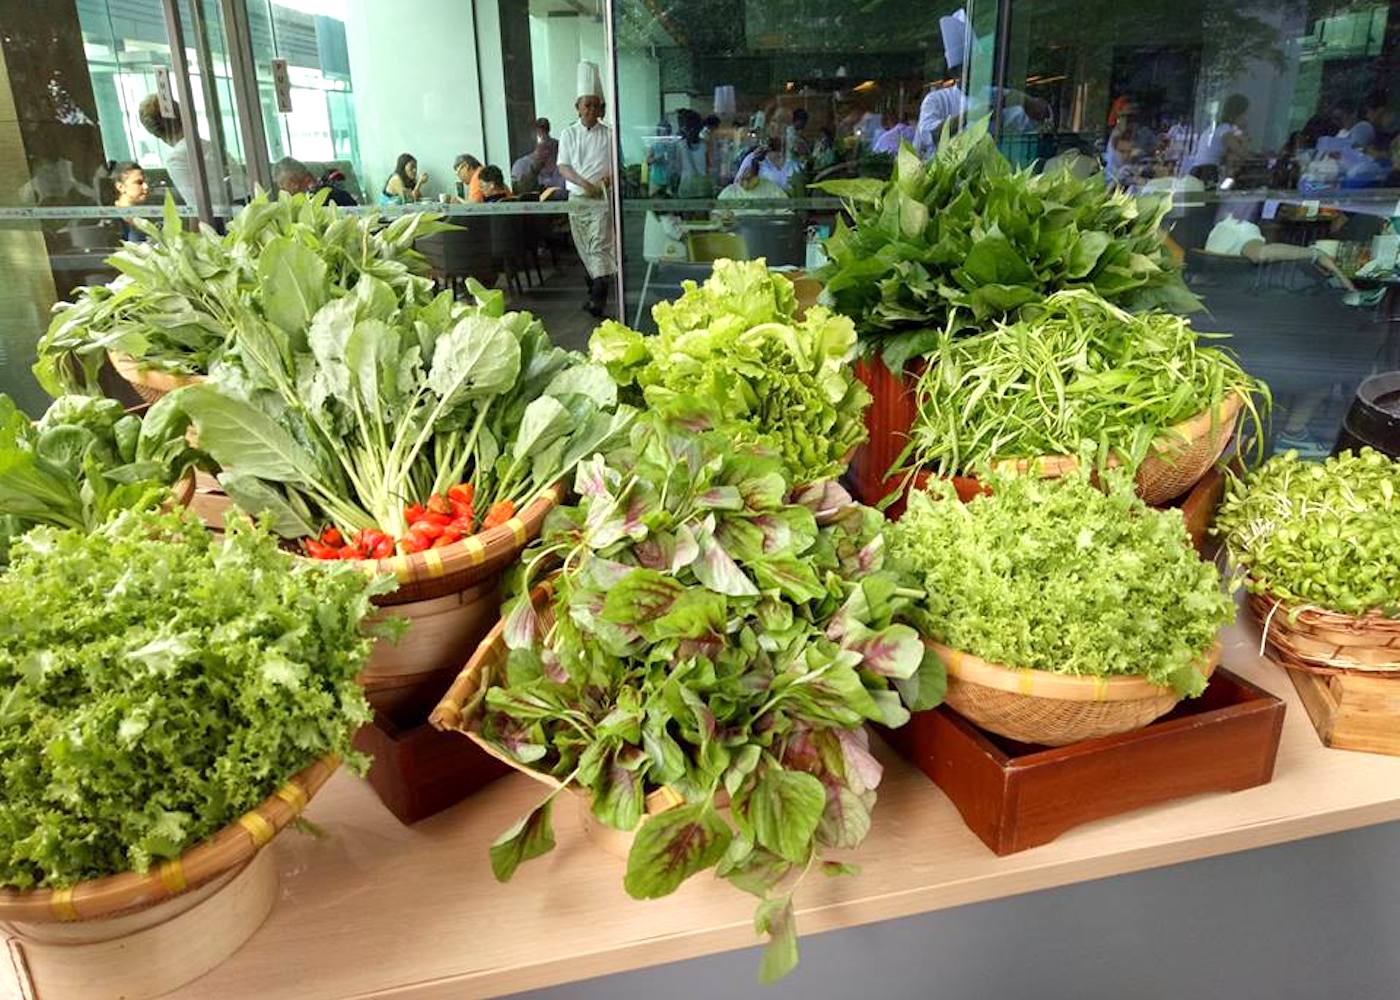 Organic Friendly Farmers Market | Weekend guide | What's on this weekend: April 27-28 2019